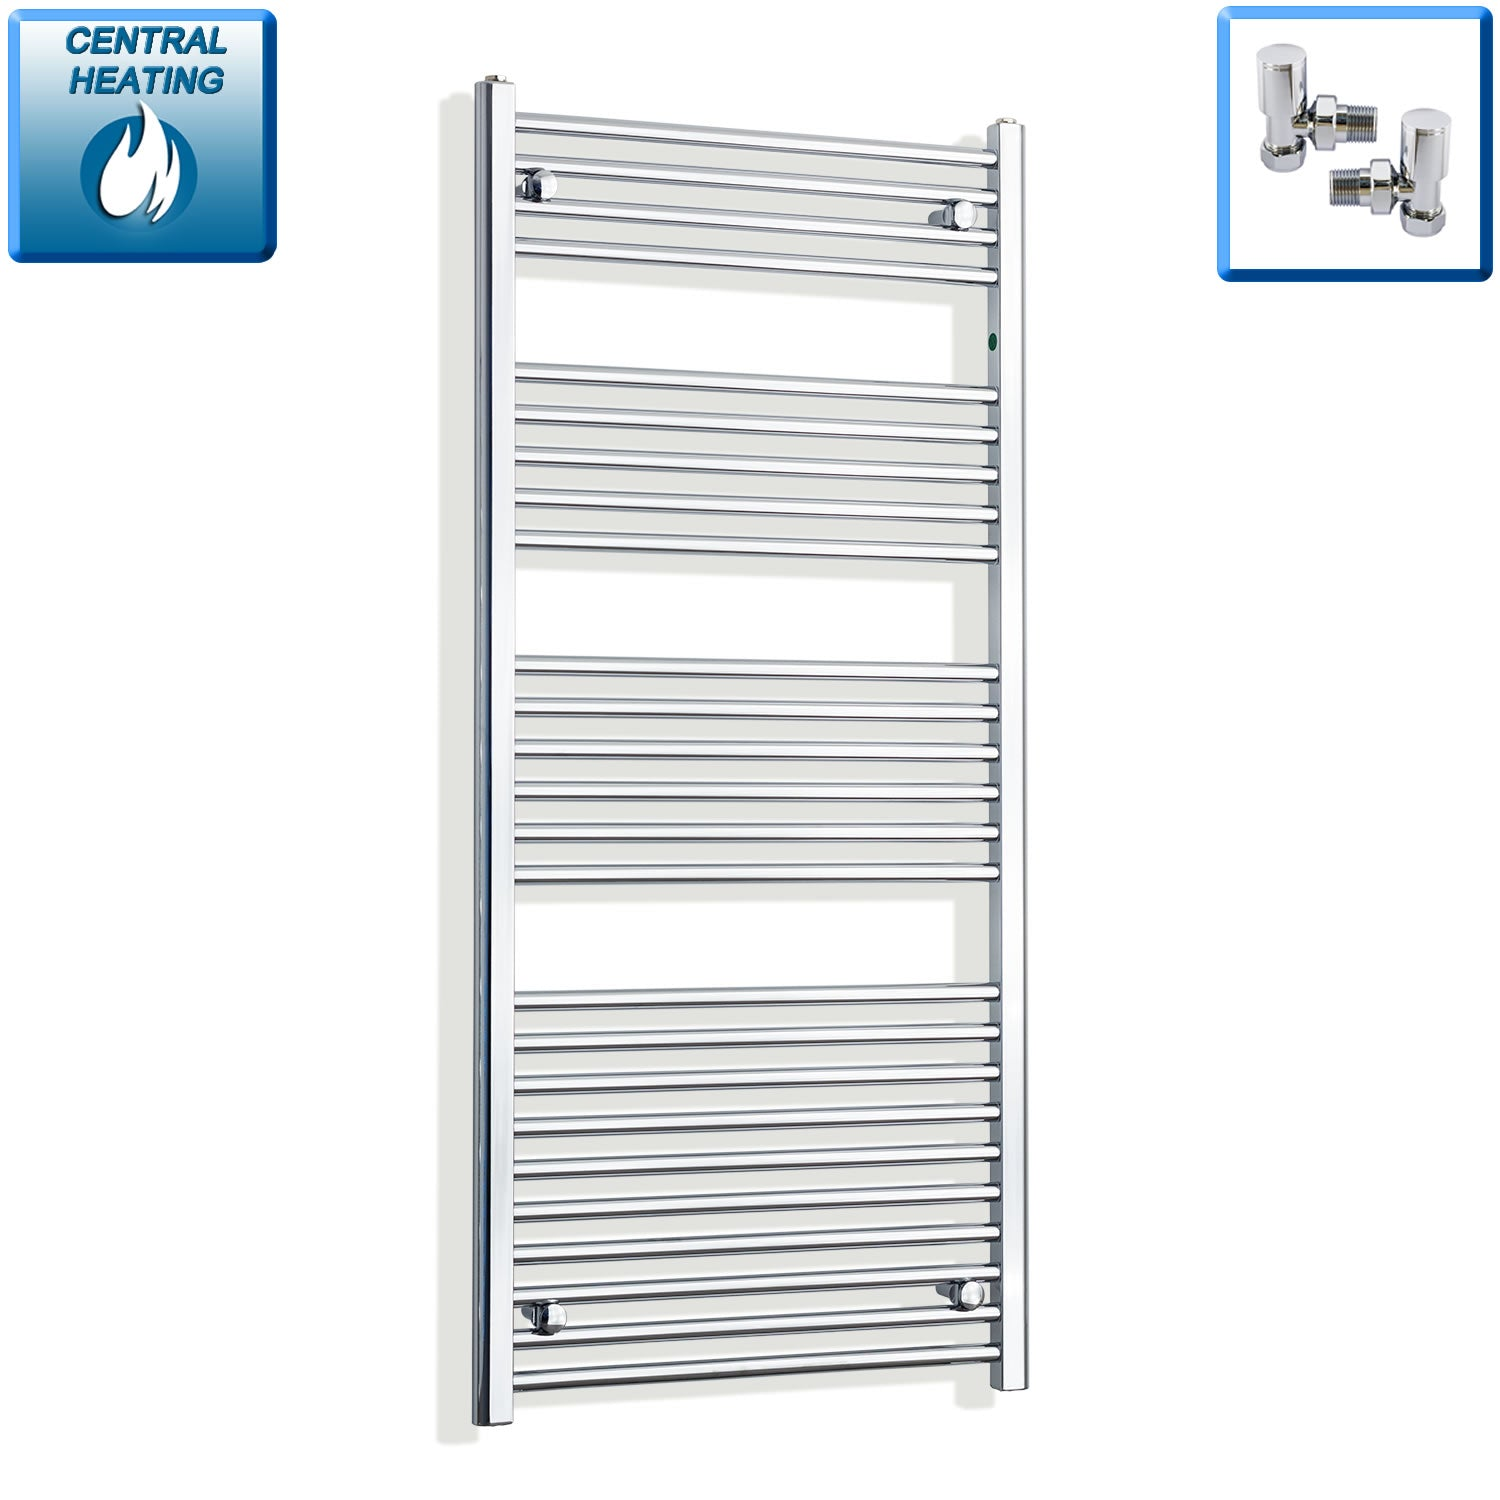 650mm Wide 1400mm High Chrome Towel Rail Radiator With Angled Valve